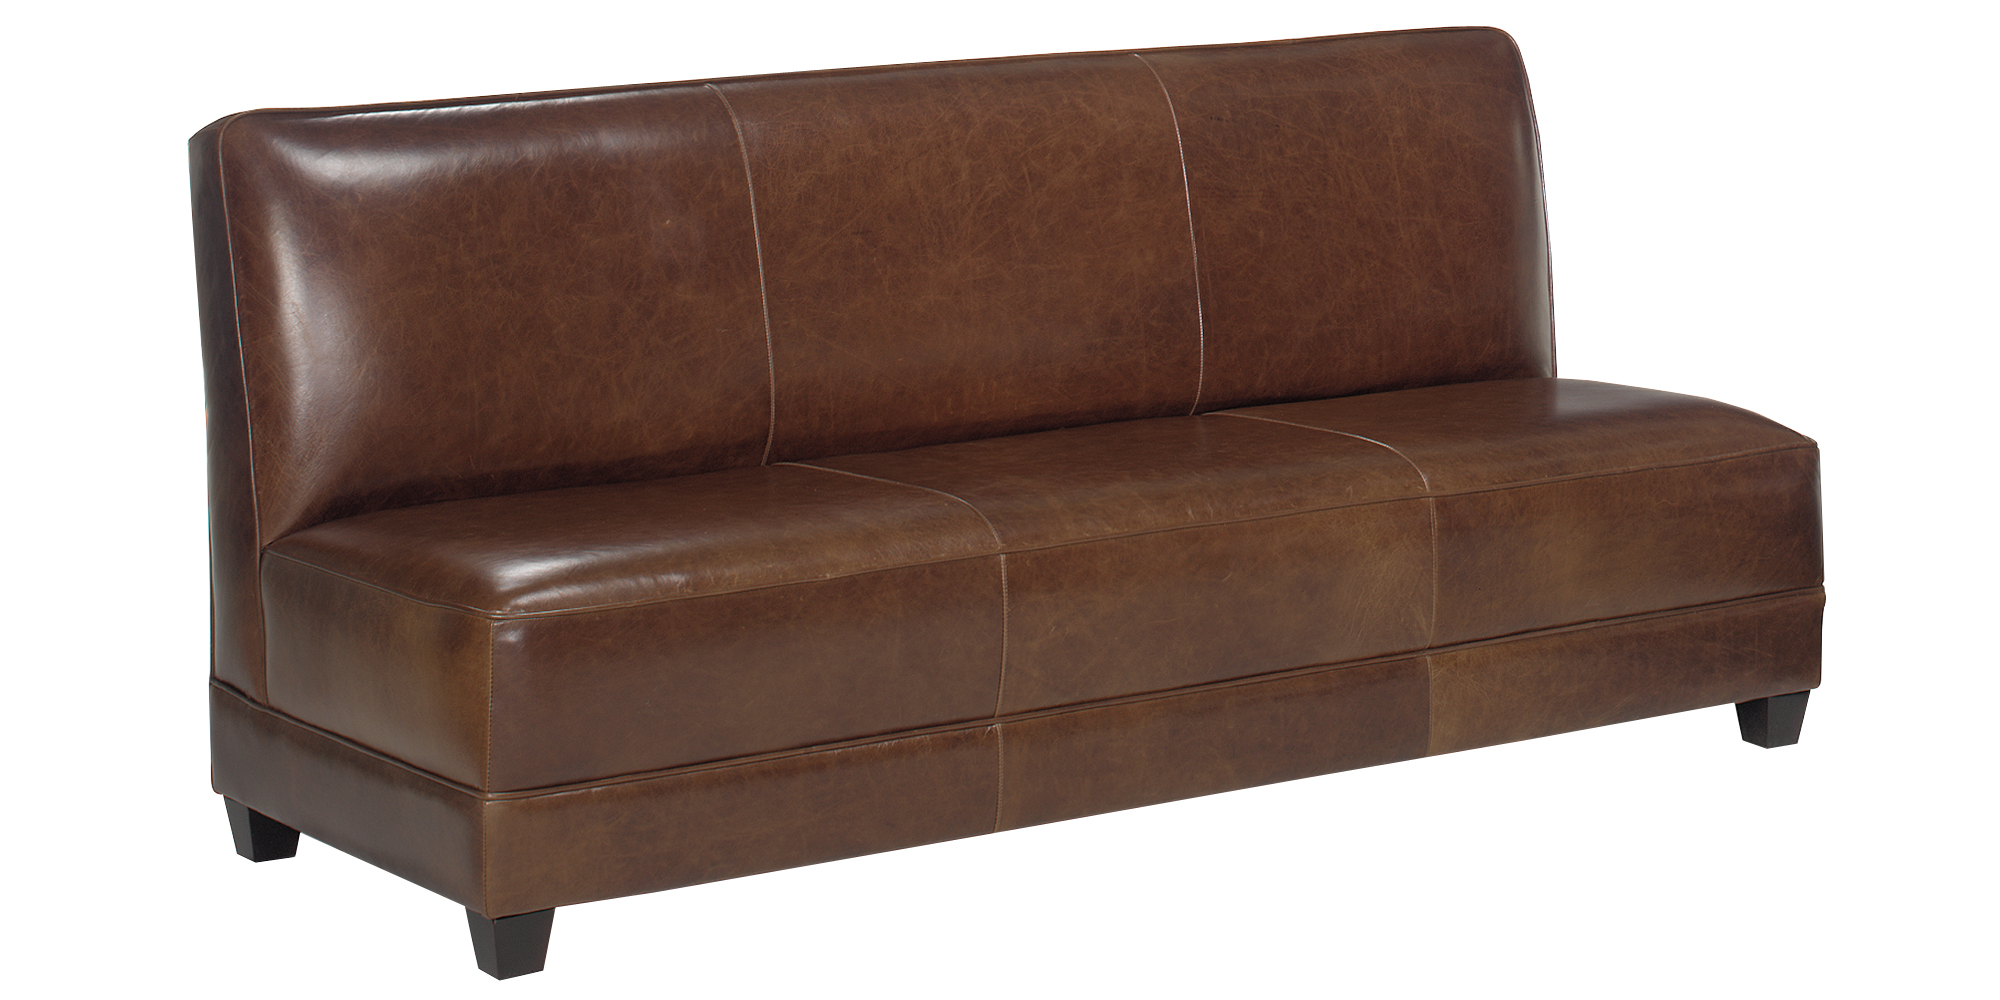 Armless Leather Settee Sofa Set with Ottoman And Chair